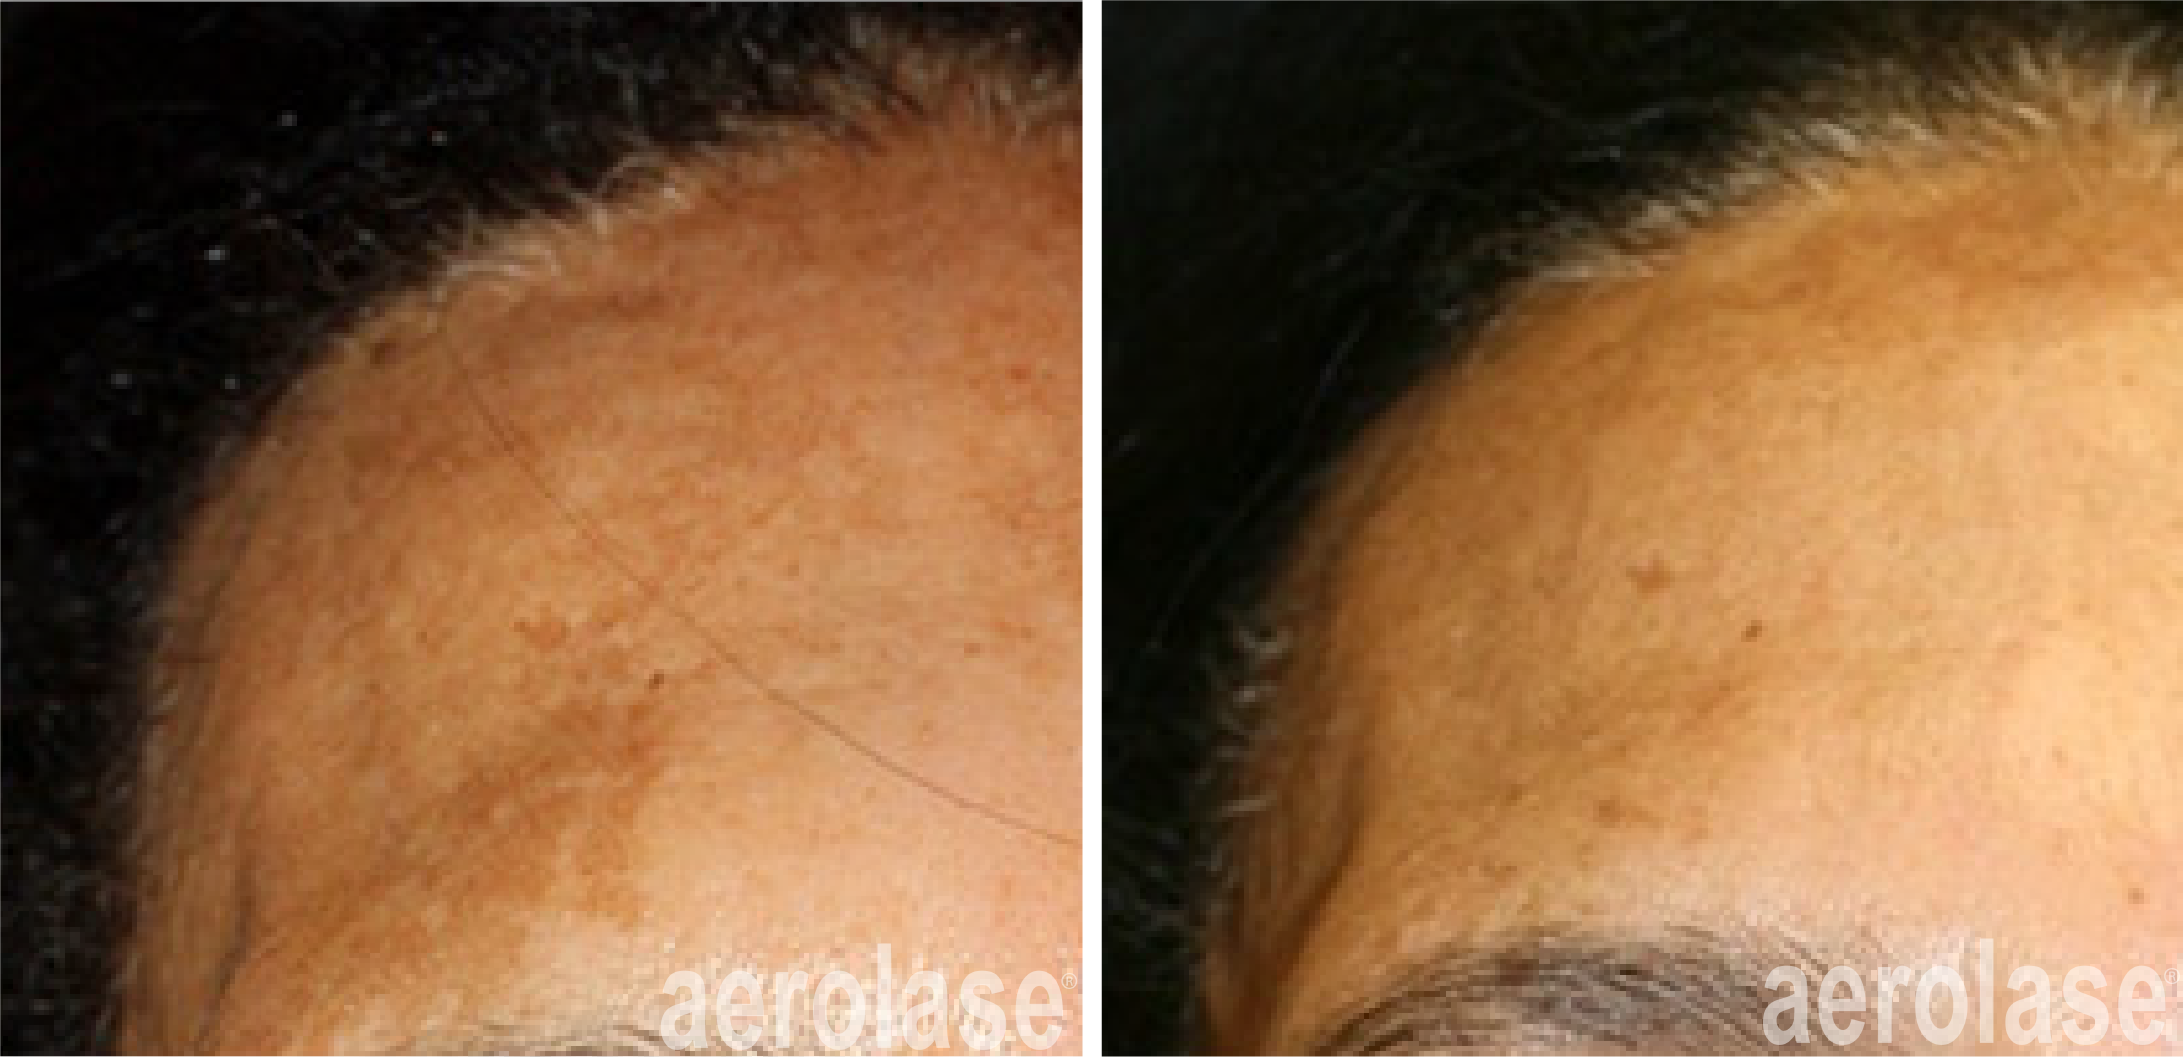 improved facial skin texture after 1 neoskin treatment in cornelius